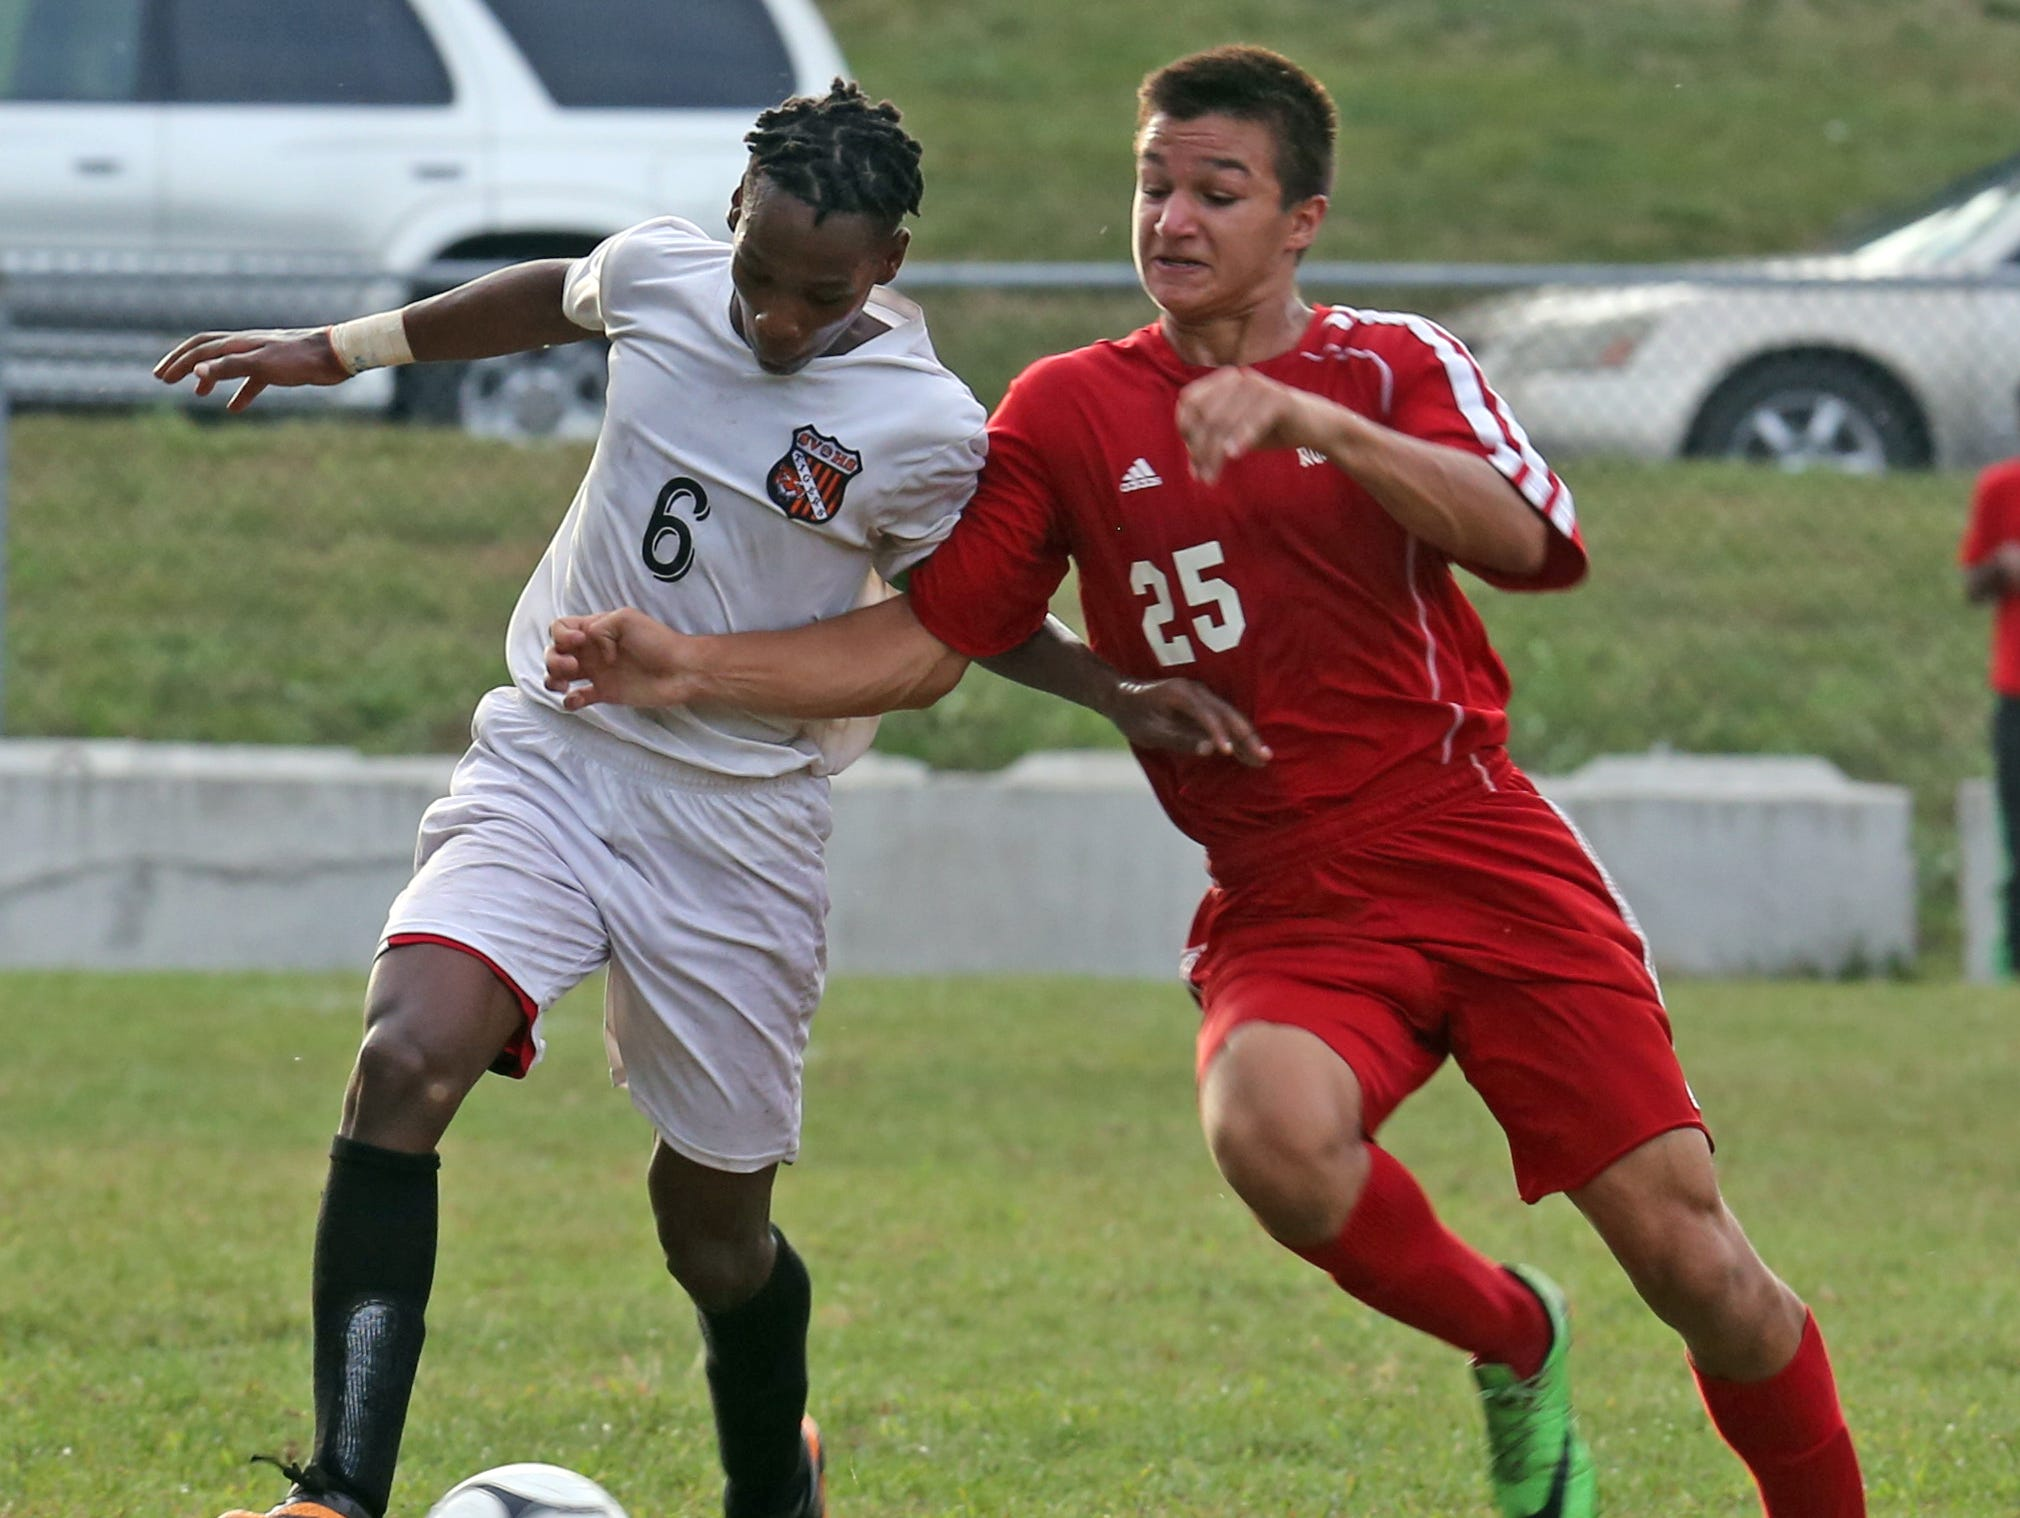 Spring Valley's (6) and North Rockland's (25) battle Dimitri Pray for control of the ball during boys soccer game at Spring Valley High School on Sept. 20, 2016.